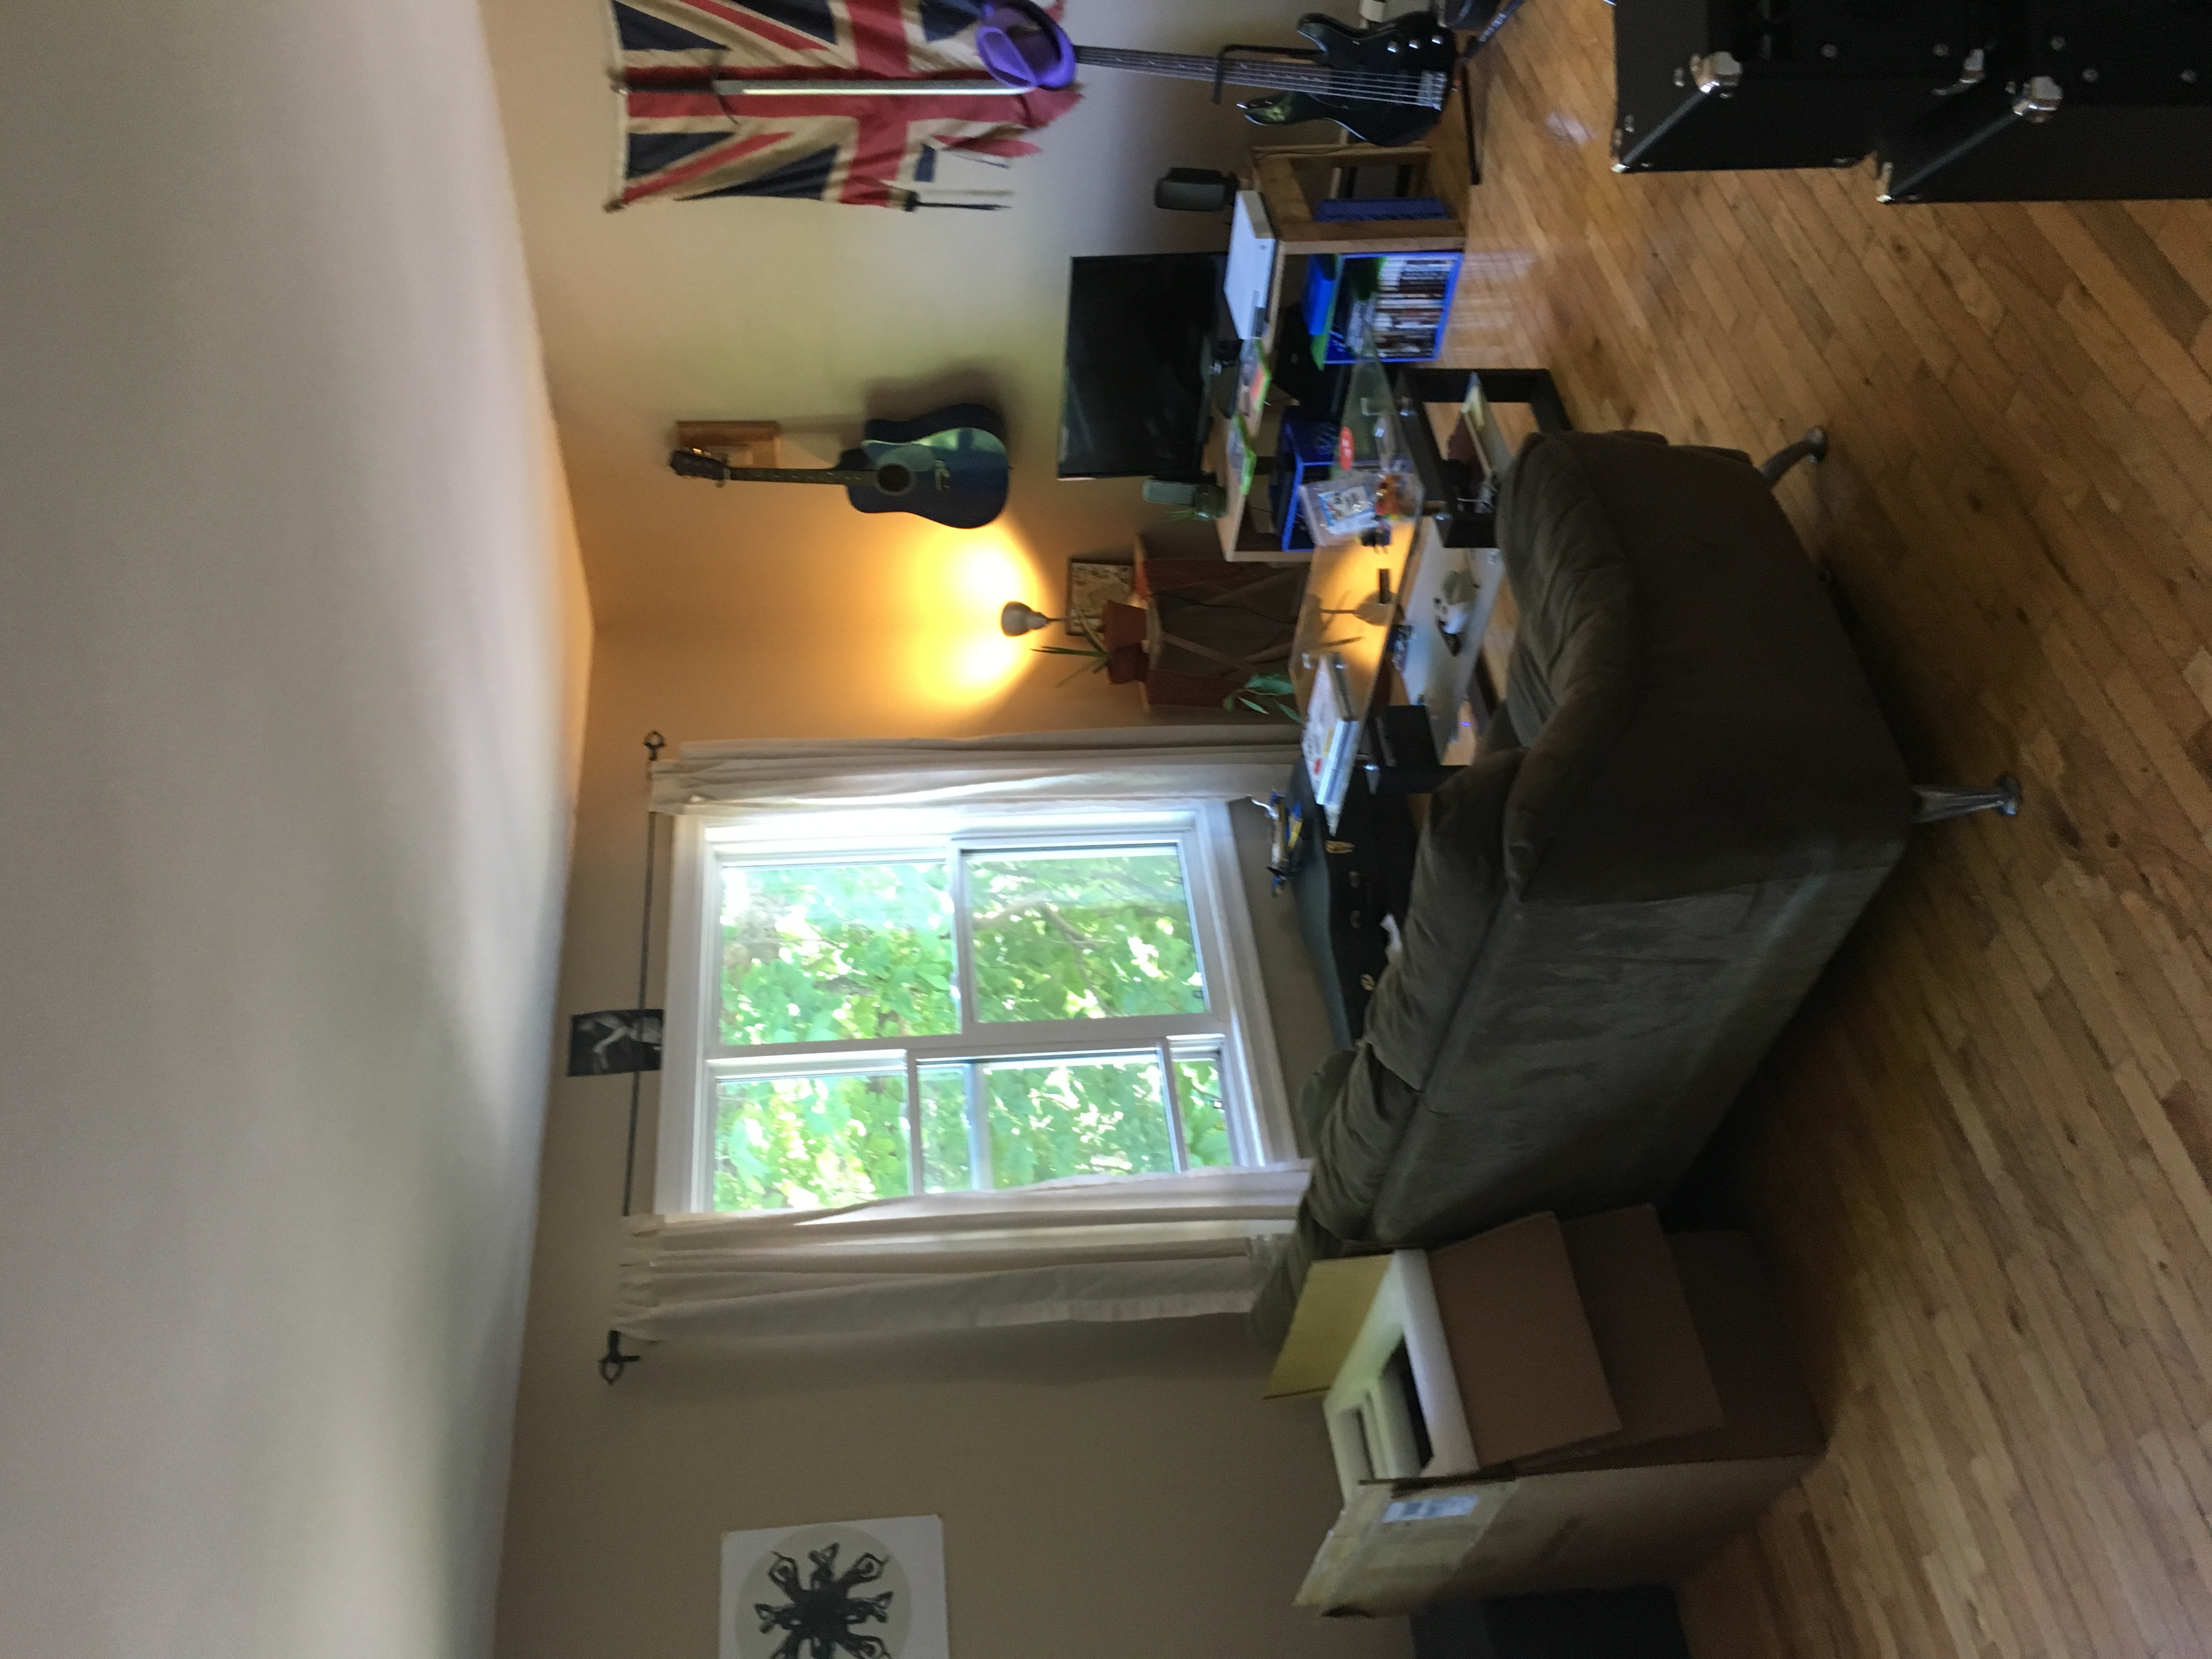 Chebucto 6521 -Unit 2 -Two Bedroom All-Inclusive- Available September 1st